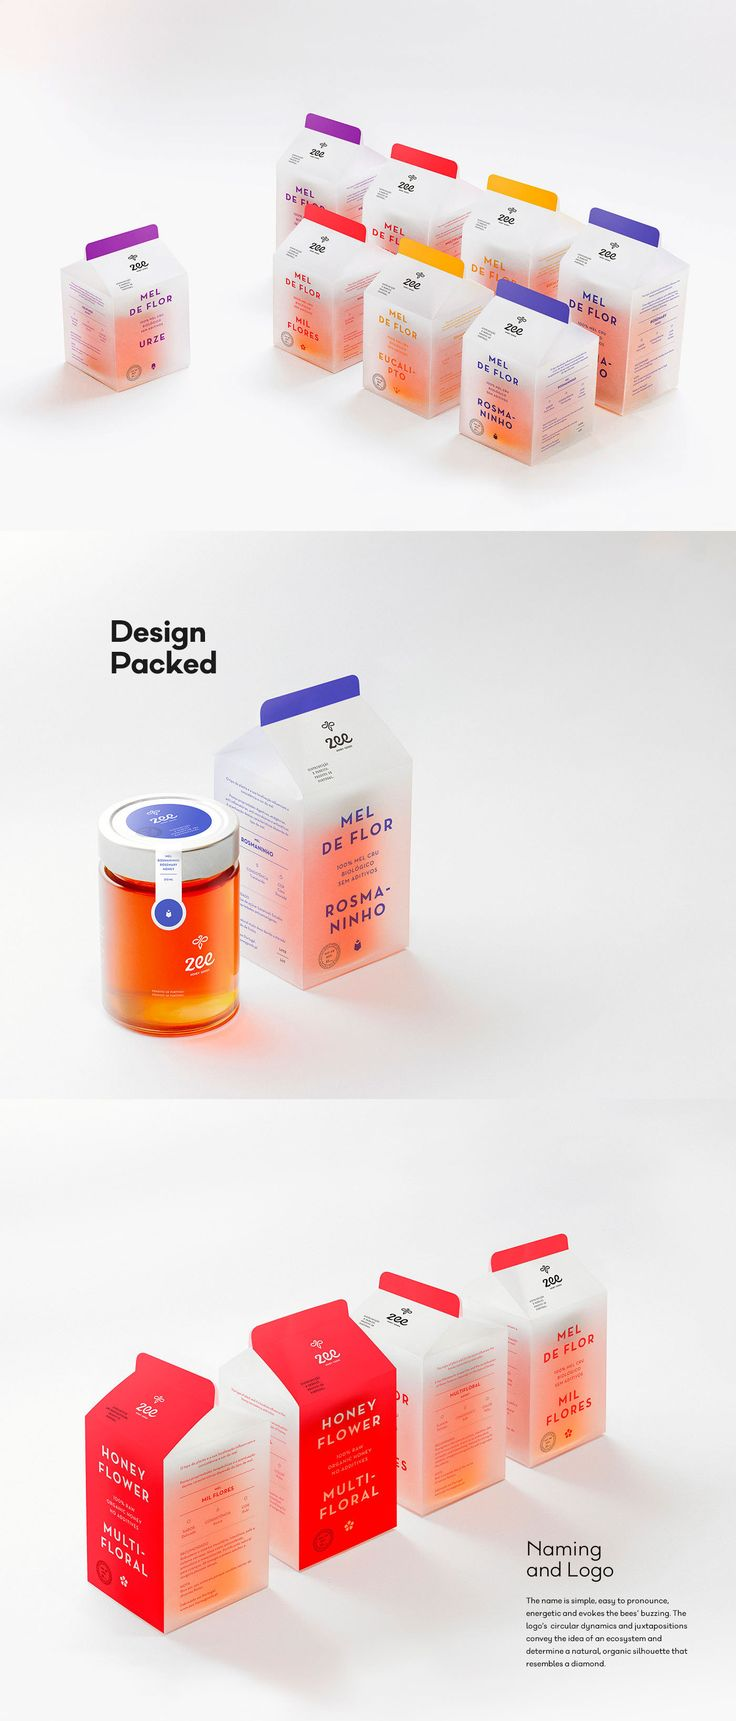 Rocking chair honey packaging ideas and cool things men buy - Rocking Chair Honey Packaging Ideas And Cool Things Men Buy Best 25 Product Design Ideas Download